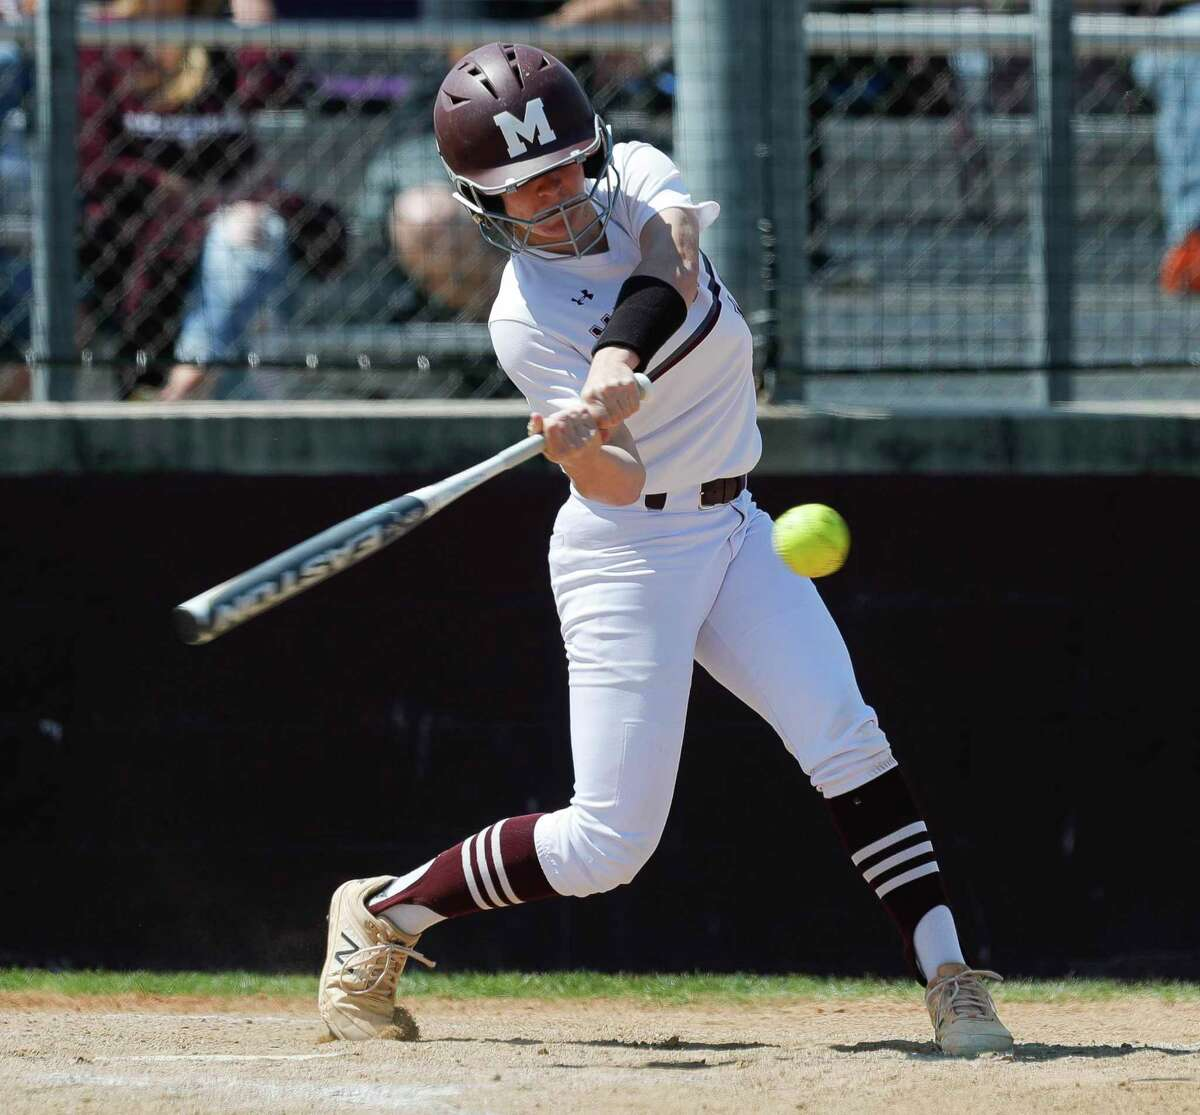 Jade Bubke #16 of Magnolia hits a single in the second inning of a District 19-5A high school softball game at Magnolia High School, Saturday, March 20, 2021, in Magnolia.